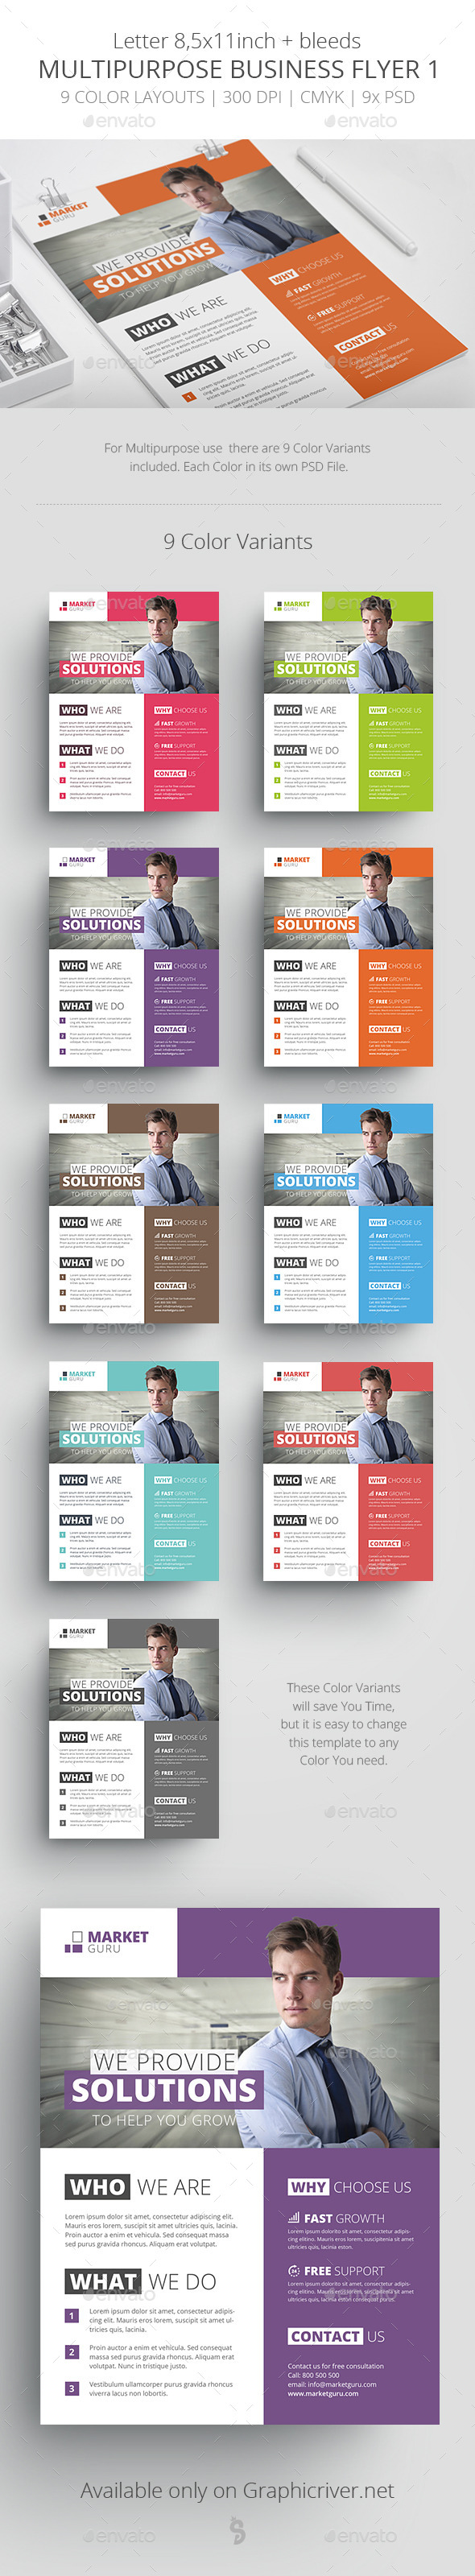 GraphicRiver Multipurpose Business Flyer Template 1 11929457